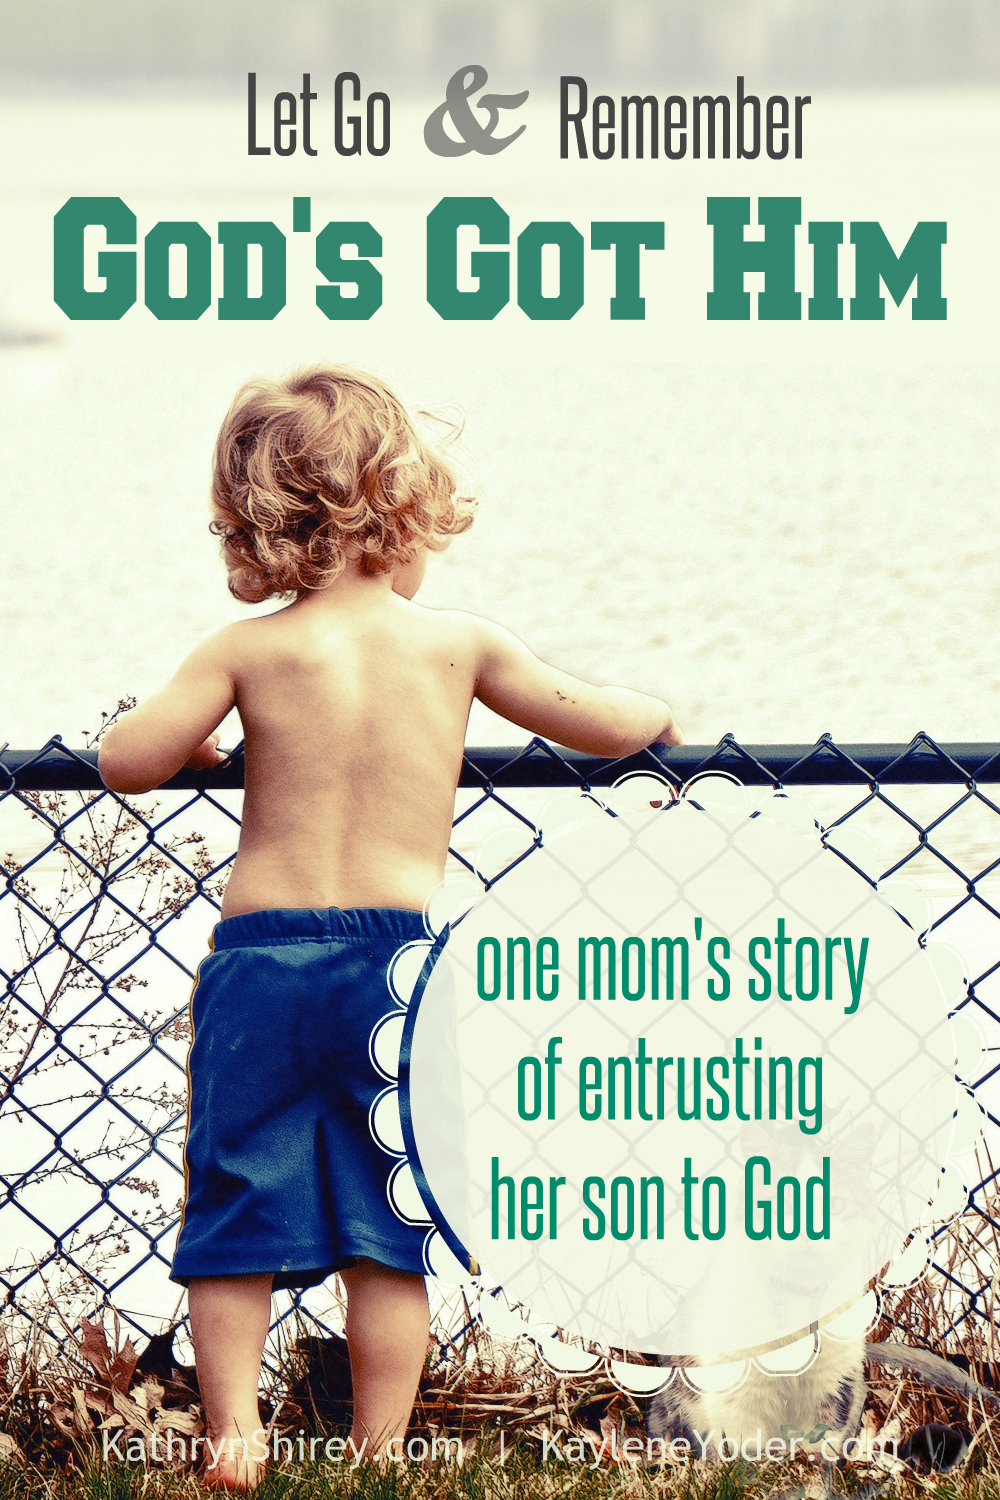 Let Go and Remember God's Got Him. One mom's story of entrusting her son to God.